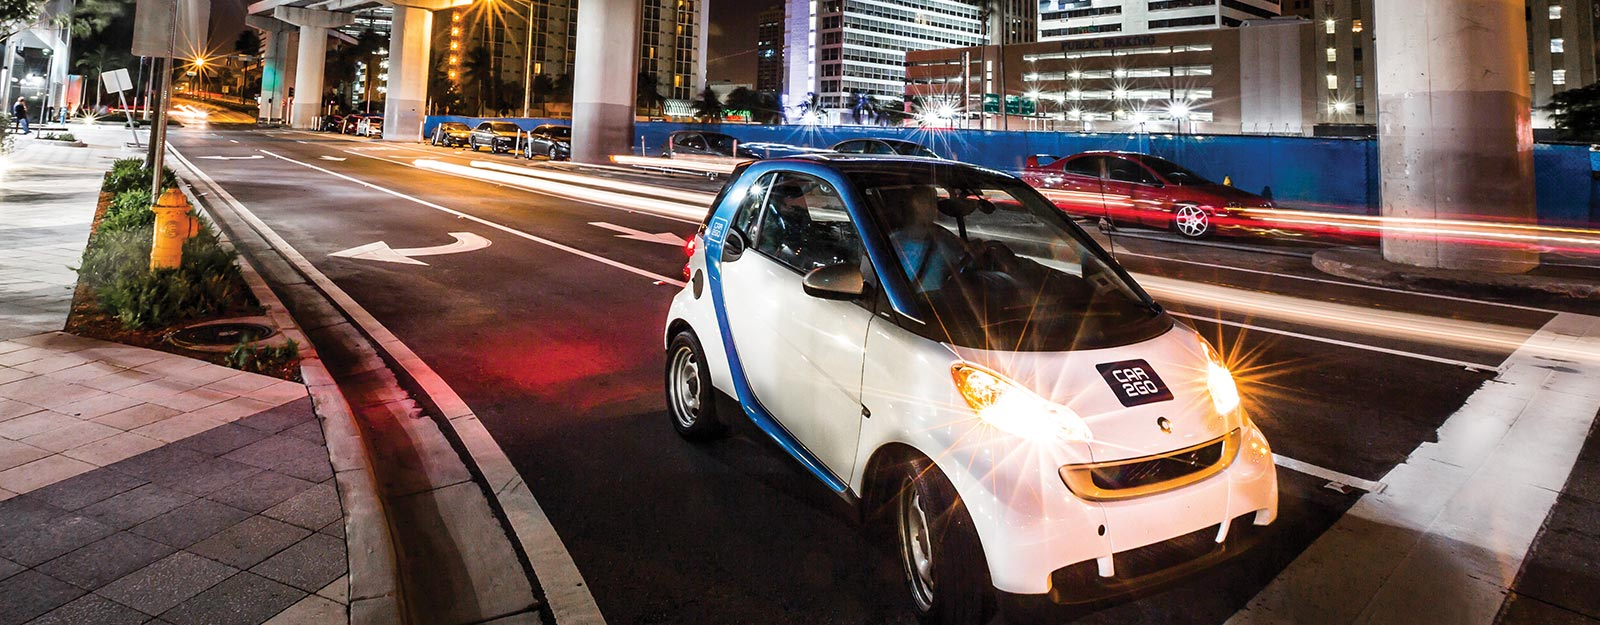 centro_slide_car2go